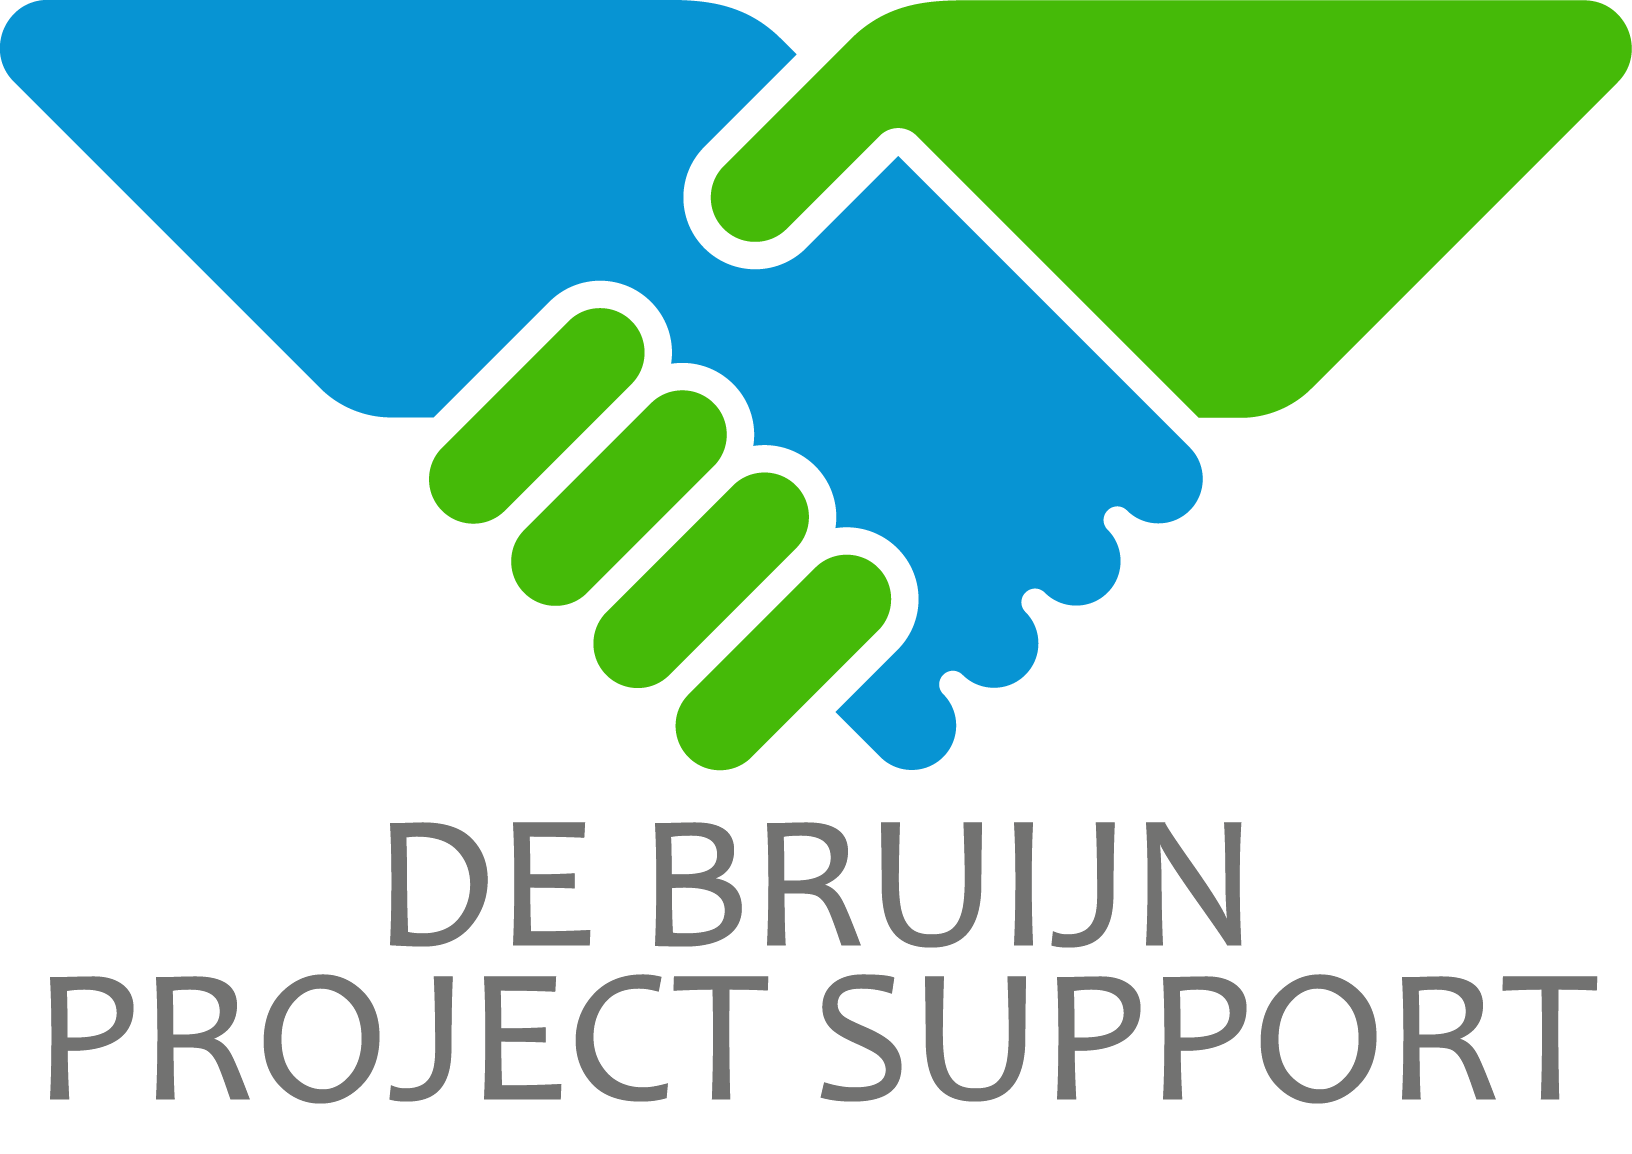 De Bruijn Project Support